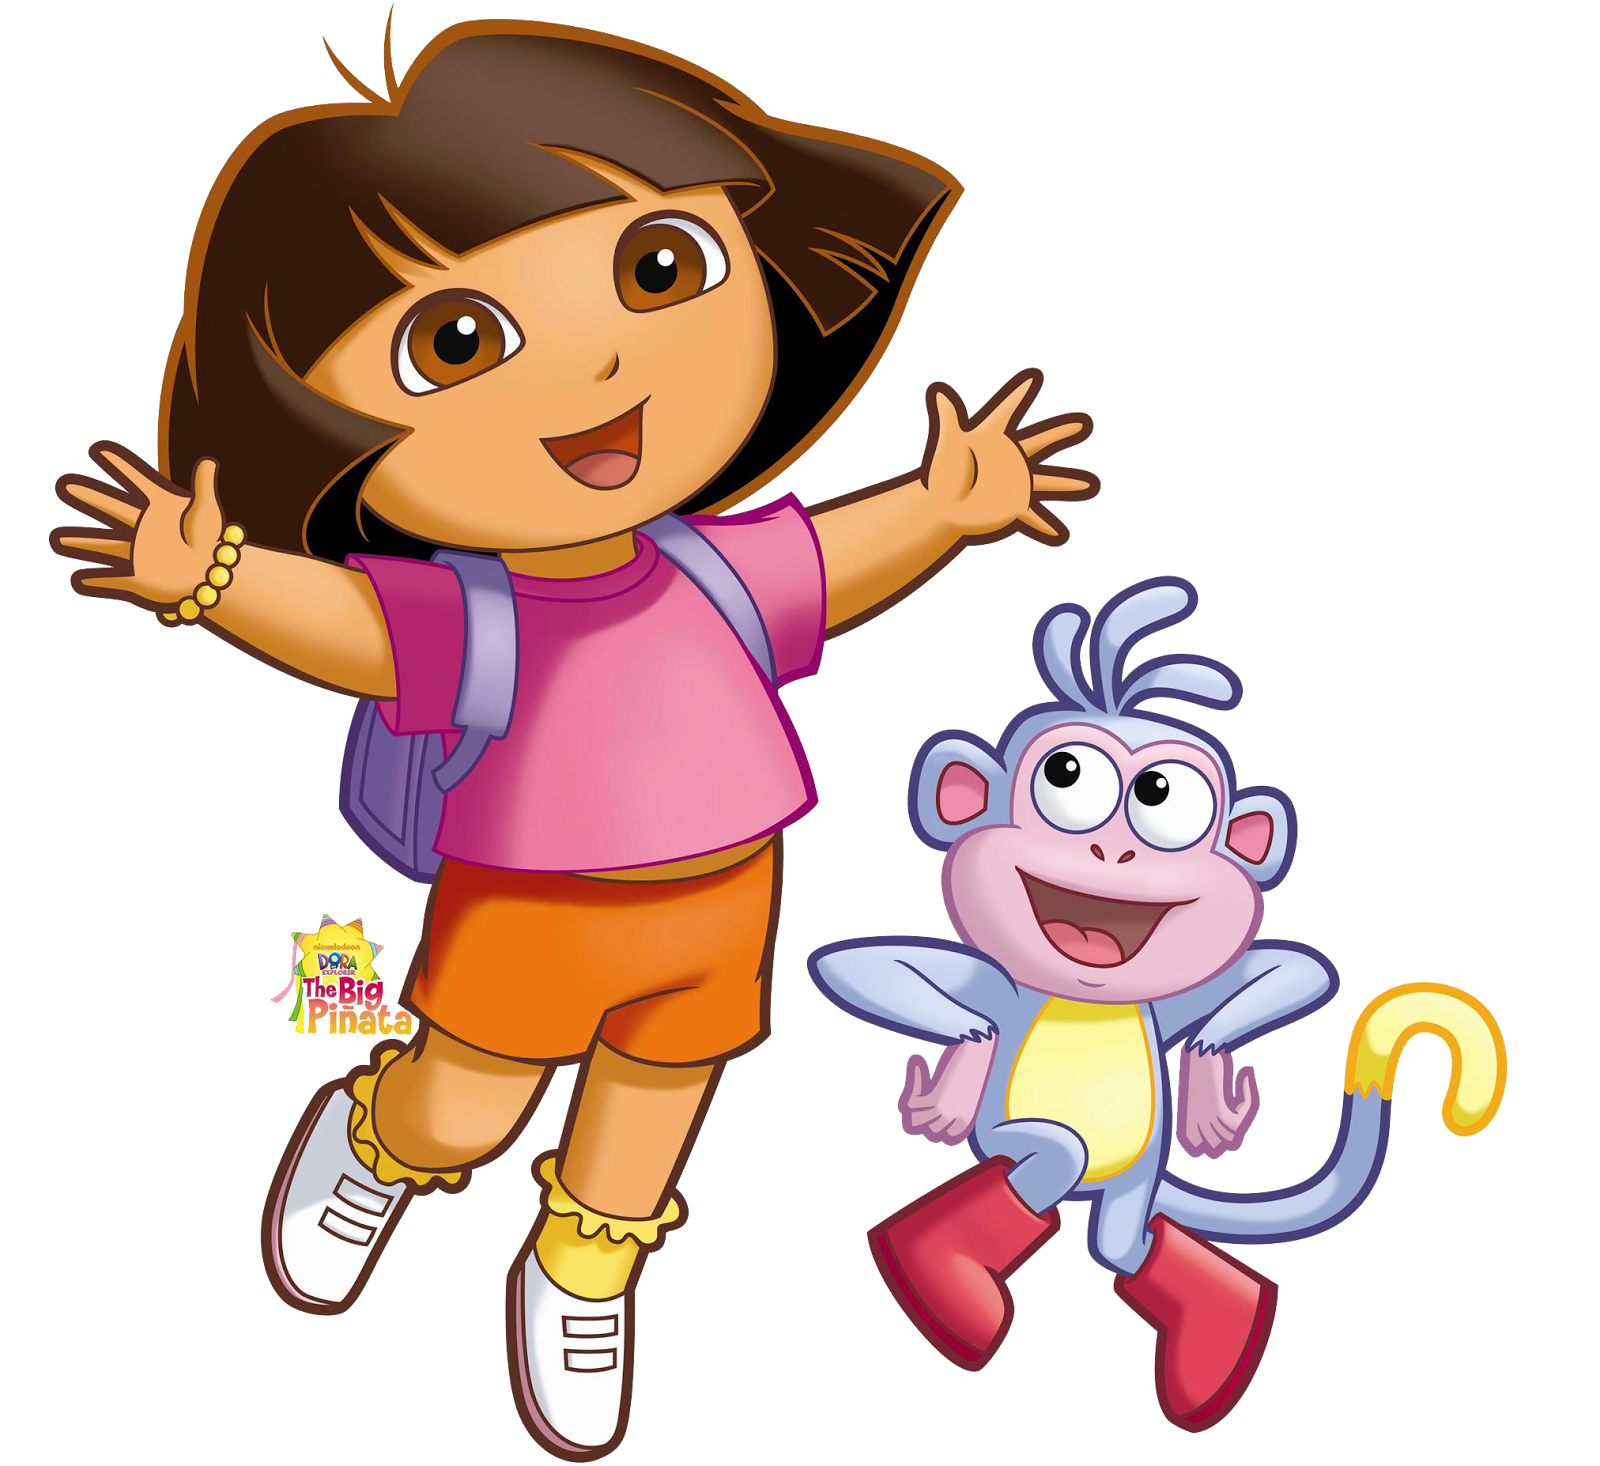 Culture clipart cultural interaction. The importance of dora